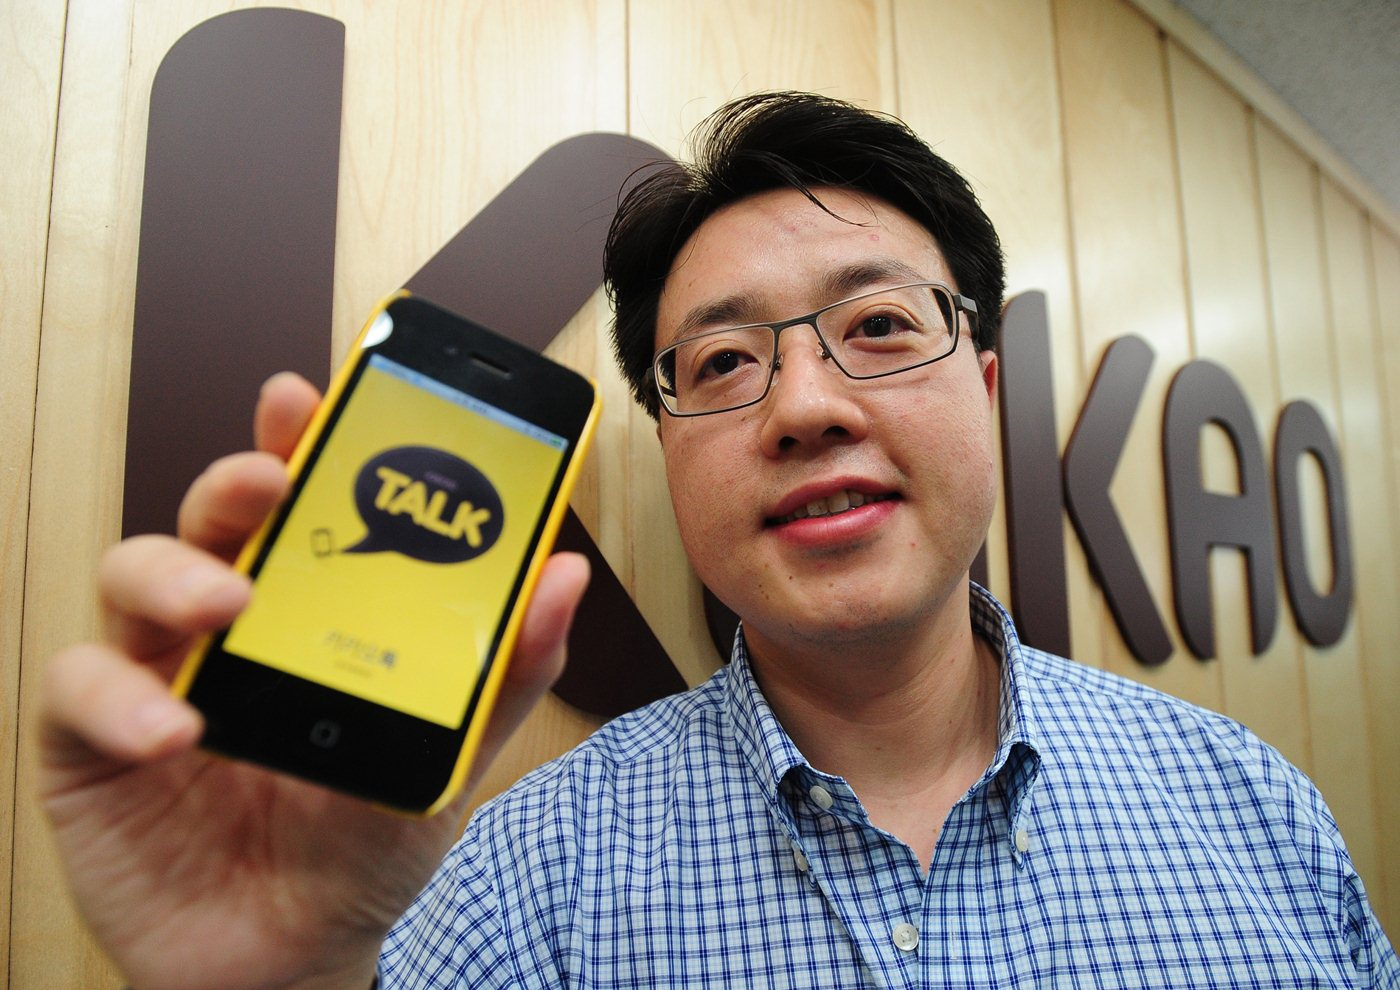 Korean messaging company Kakao partners with Yahoo Japan, eying larger Japanese profile